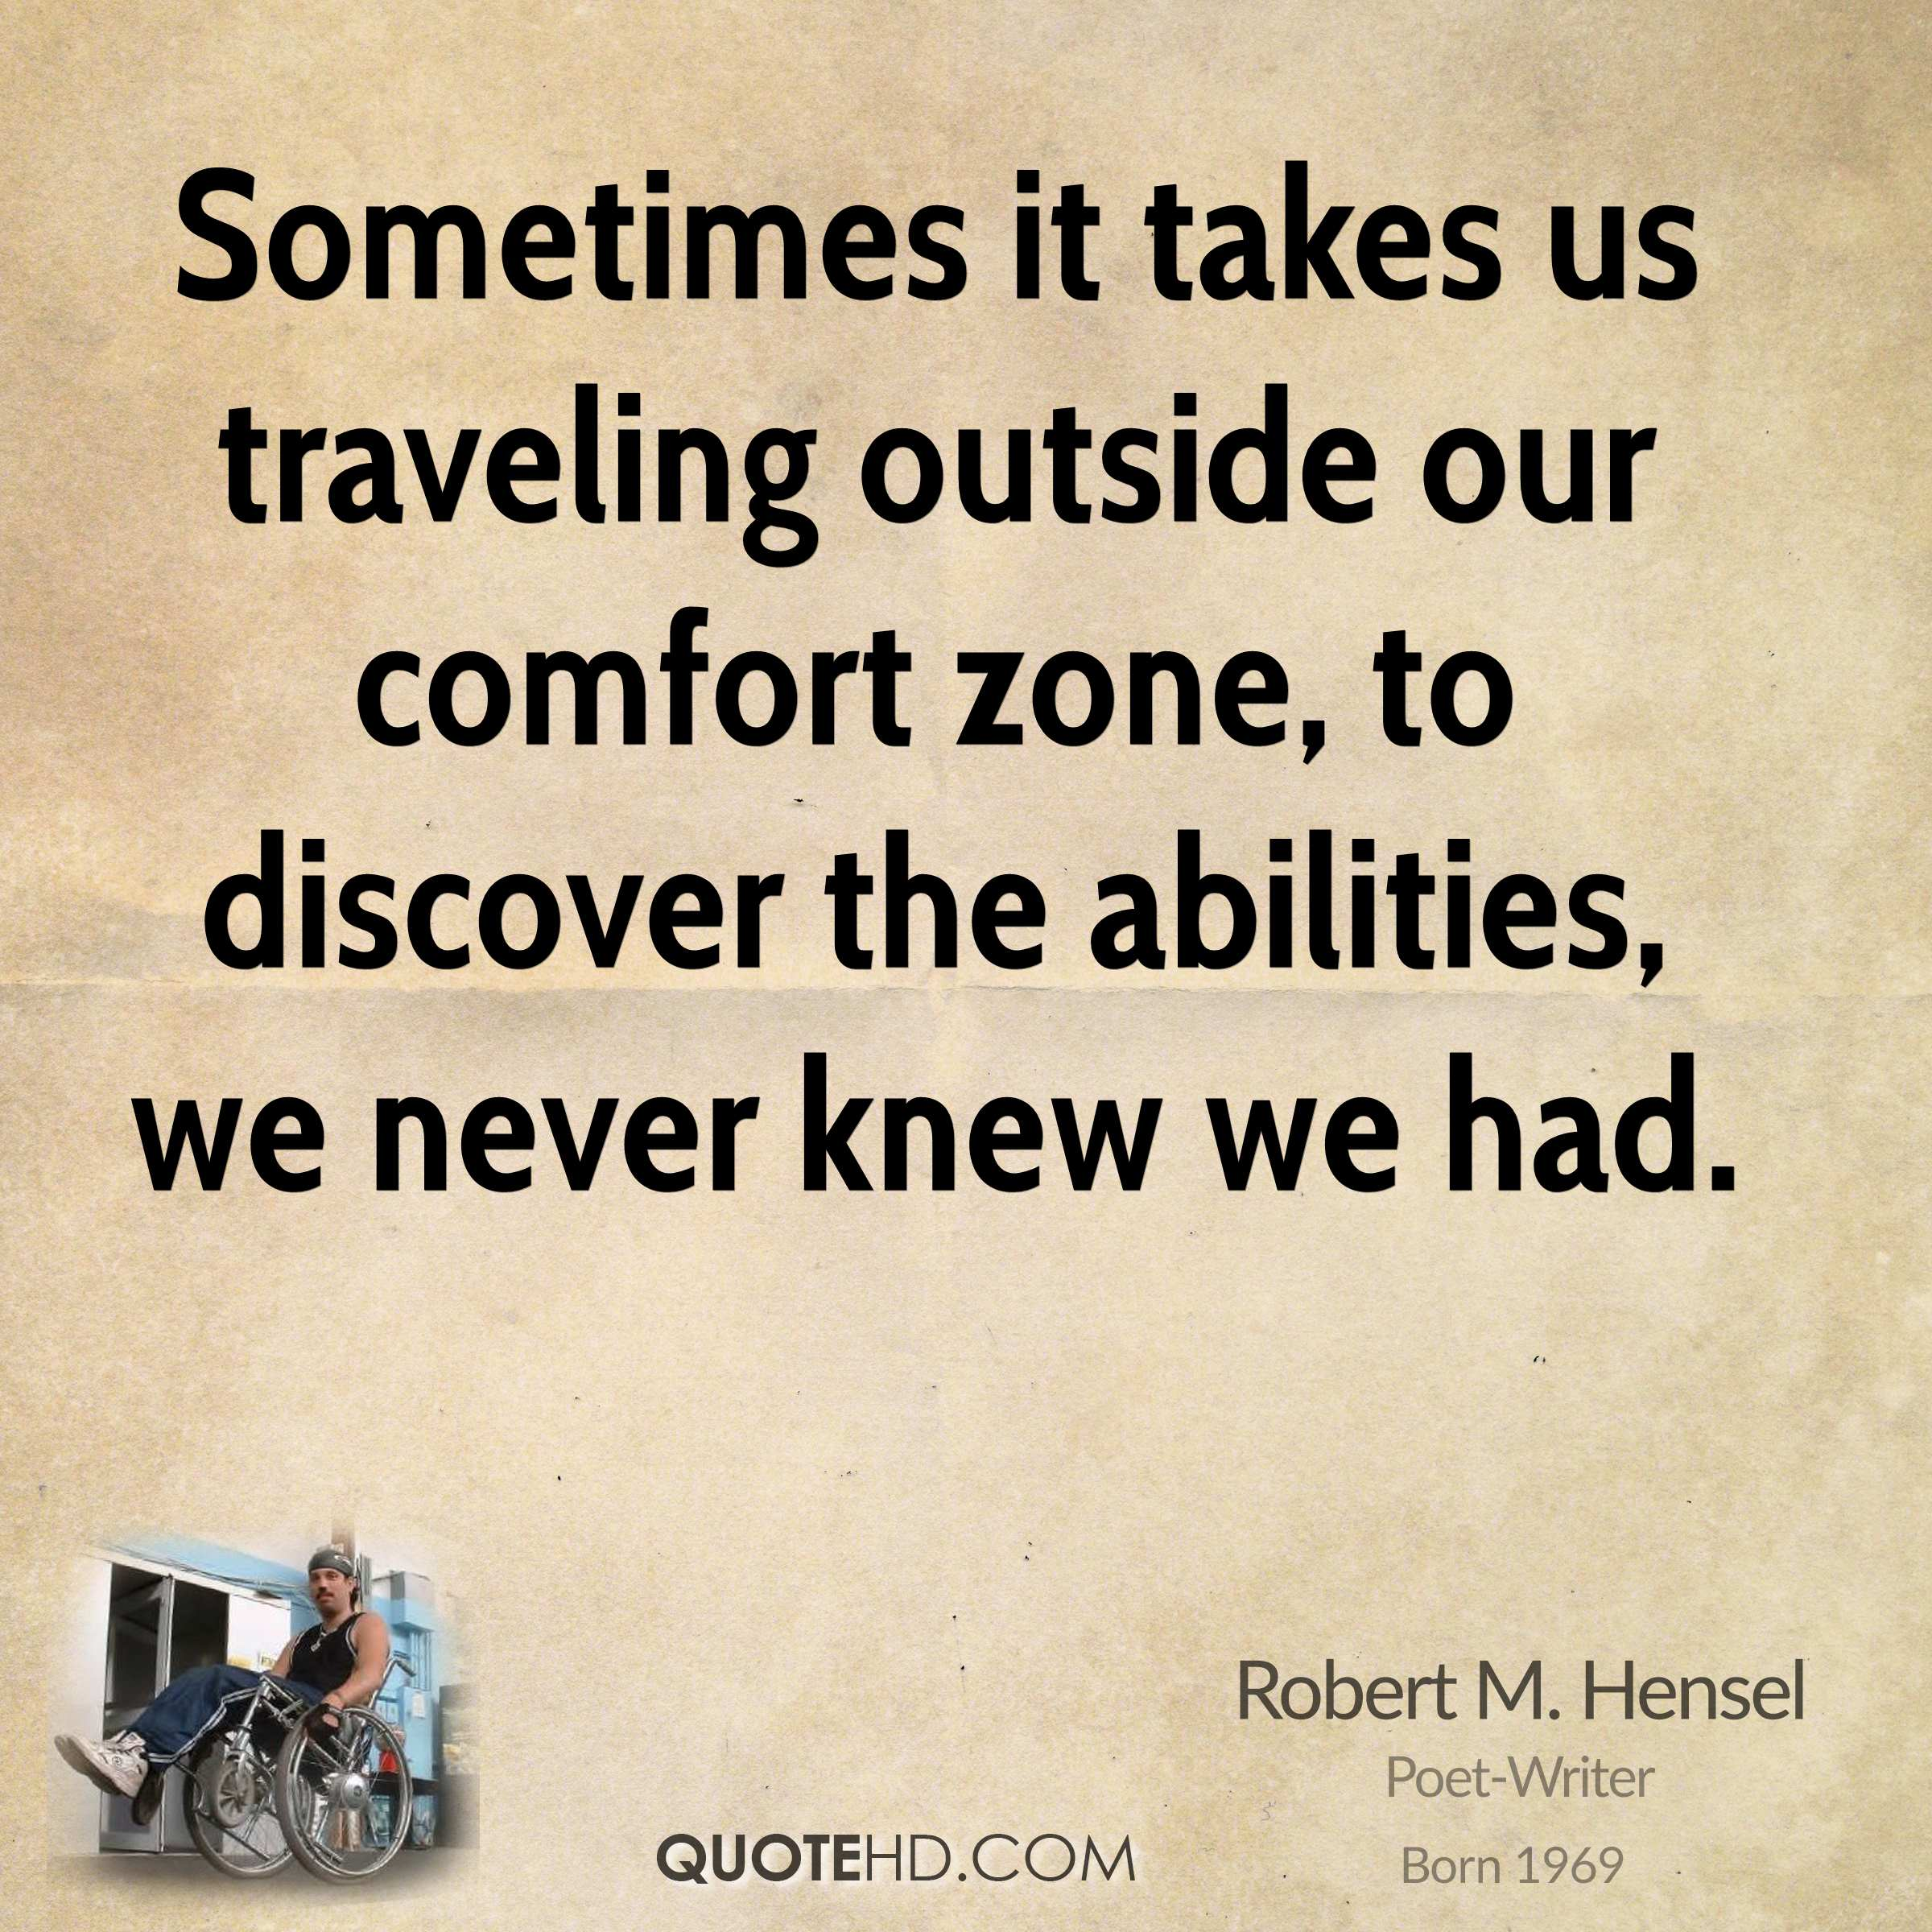 Sometimes it takes us traveling outside our comfort zone, to discover the abilities, we never knew we had.